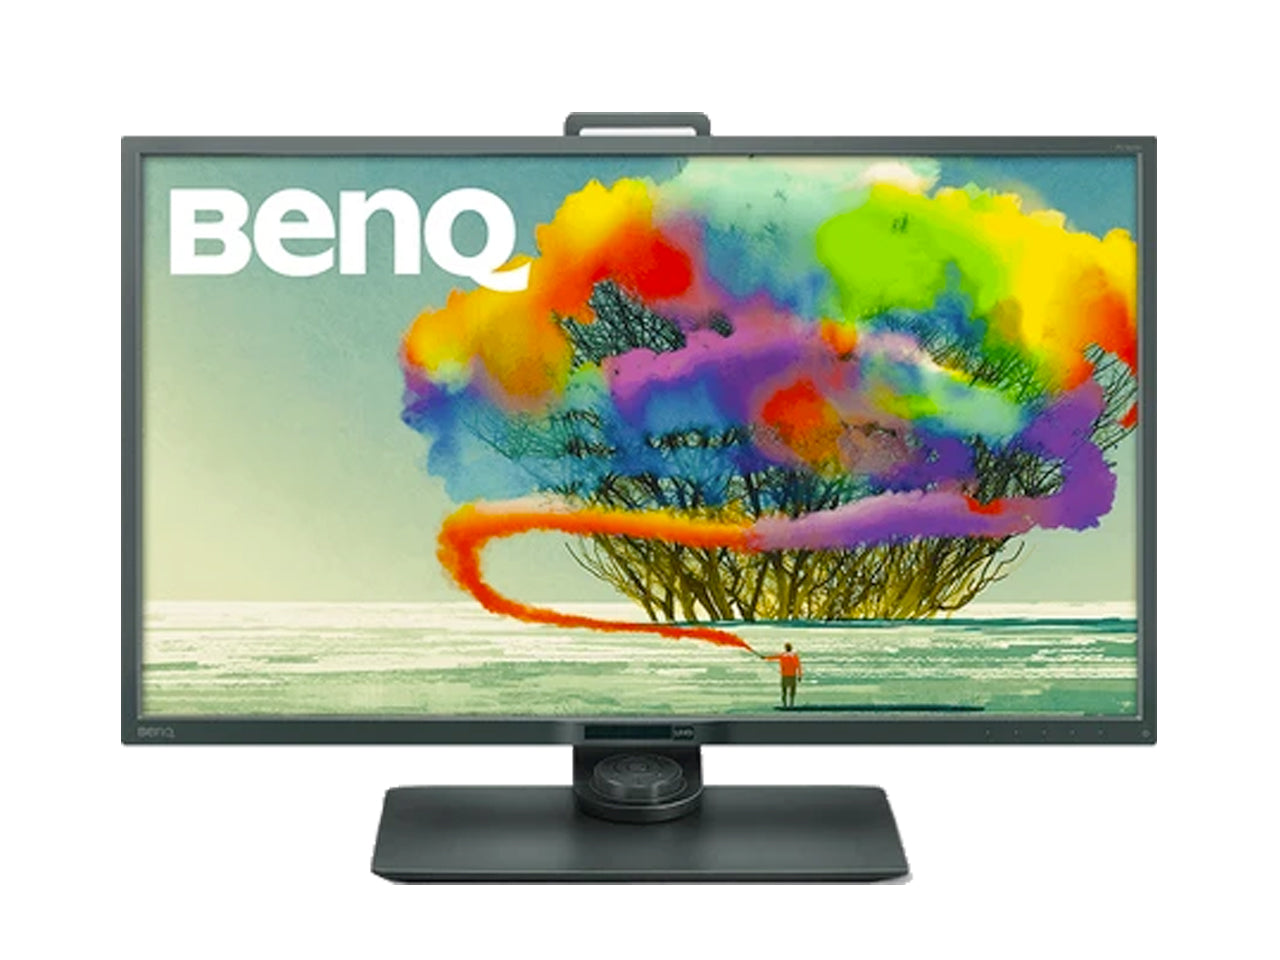 BenQ Designer with 32 inch QHD sRGB PD3200Q Monitor